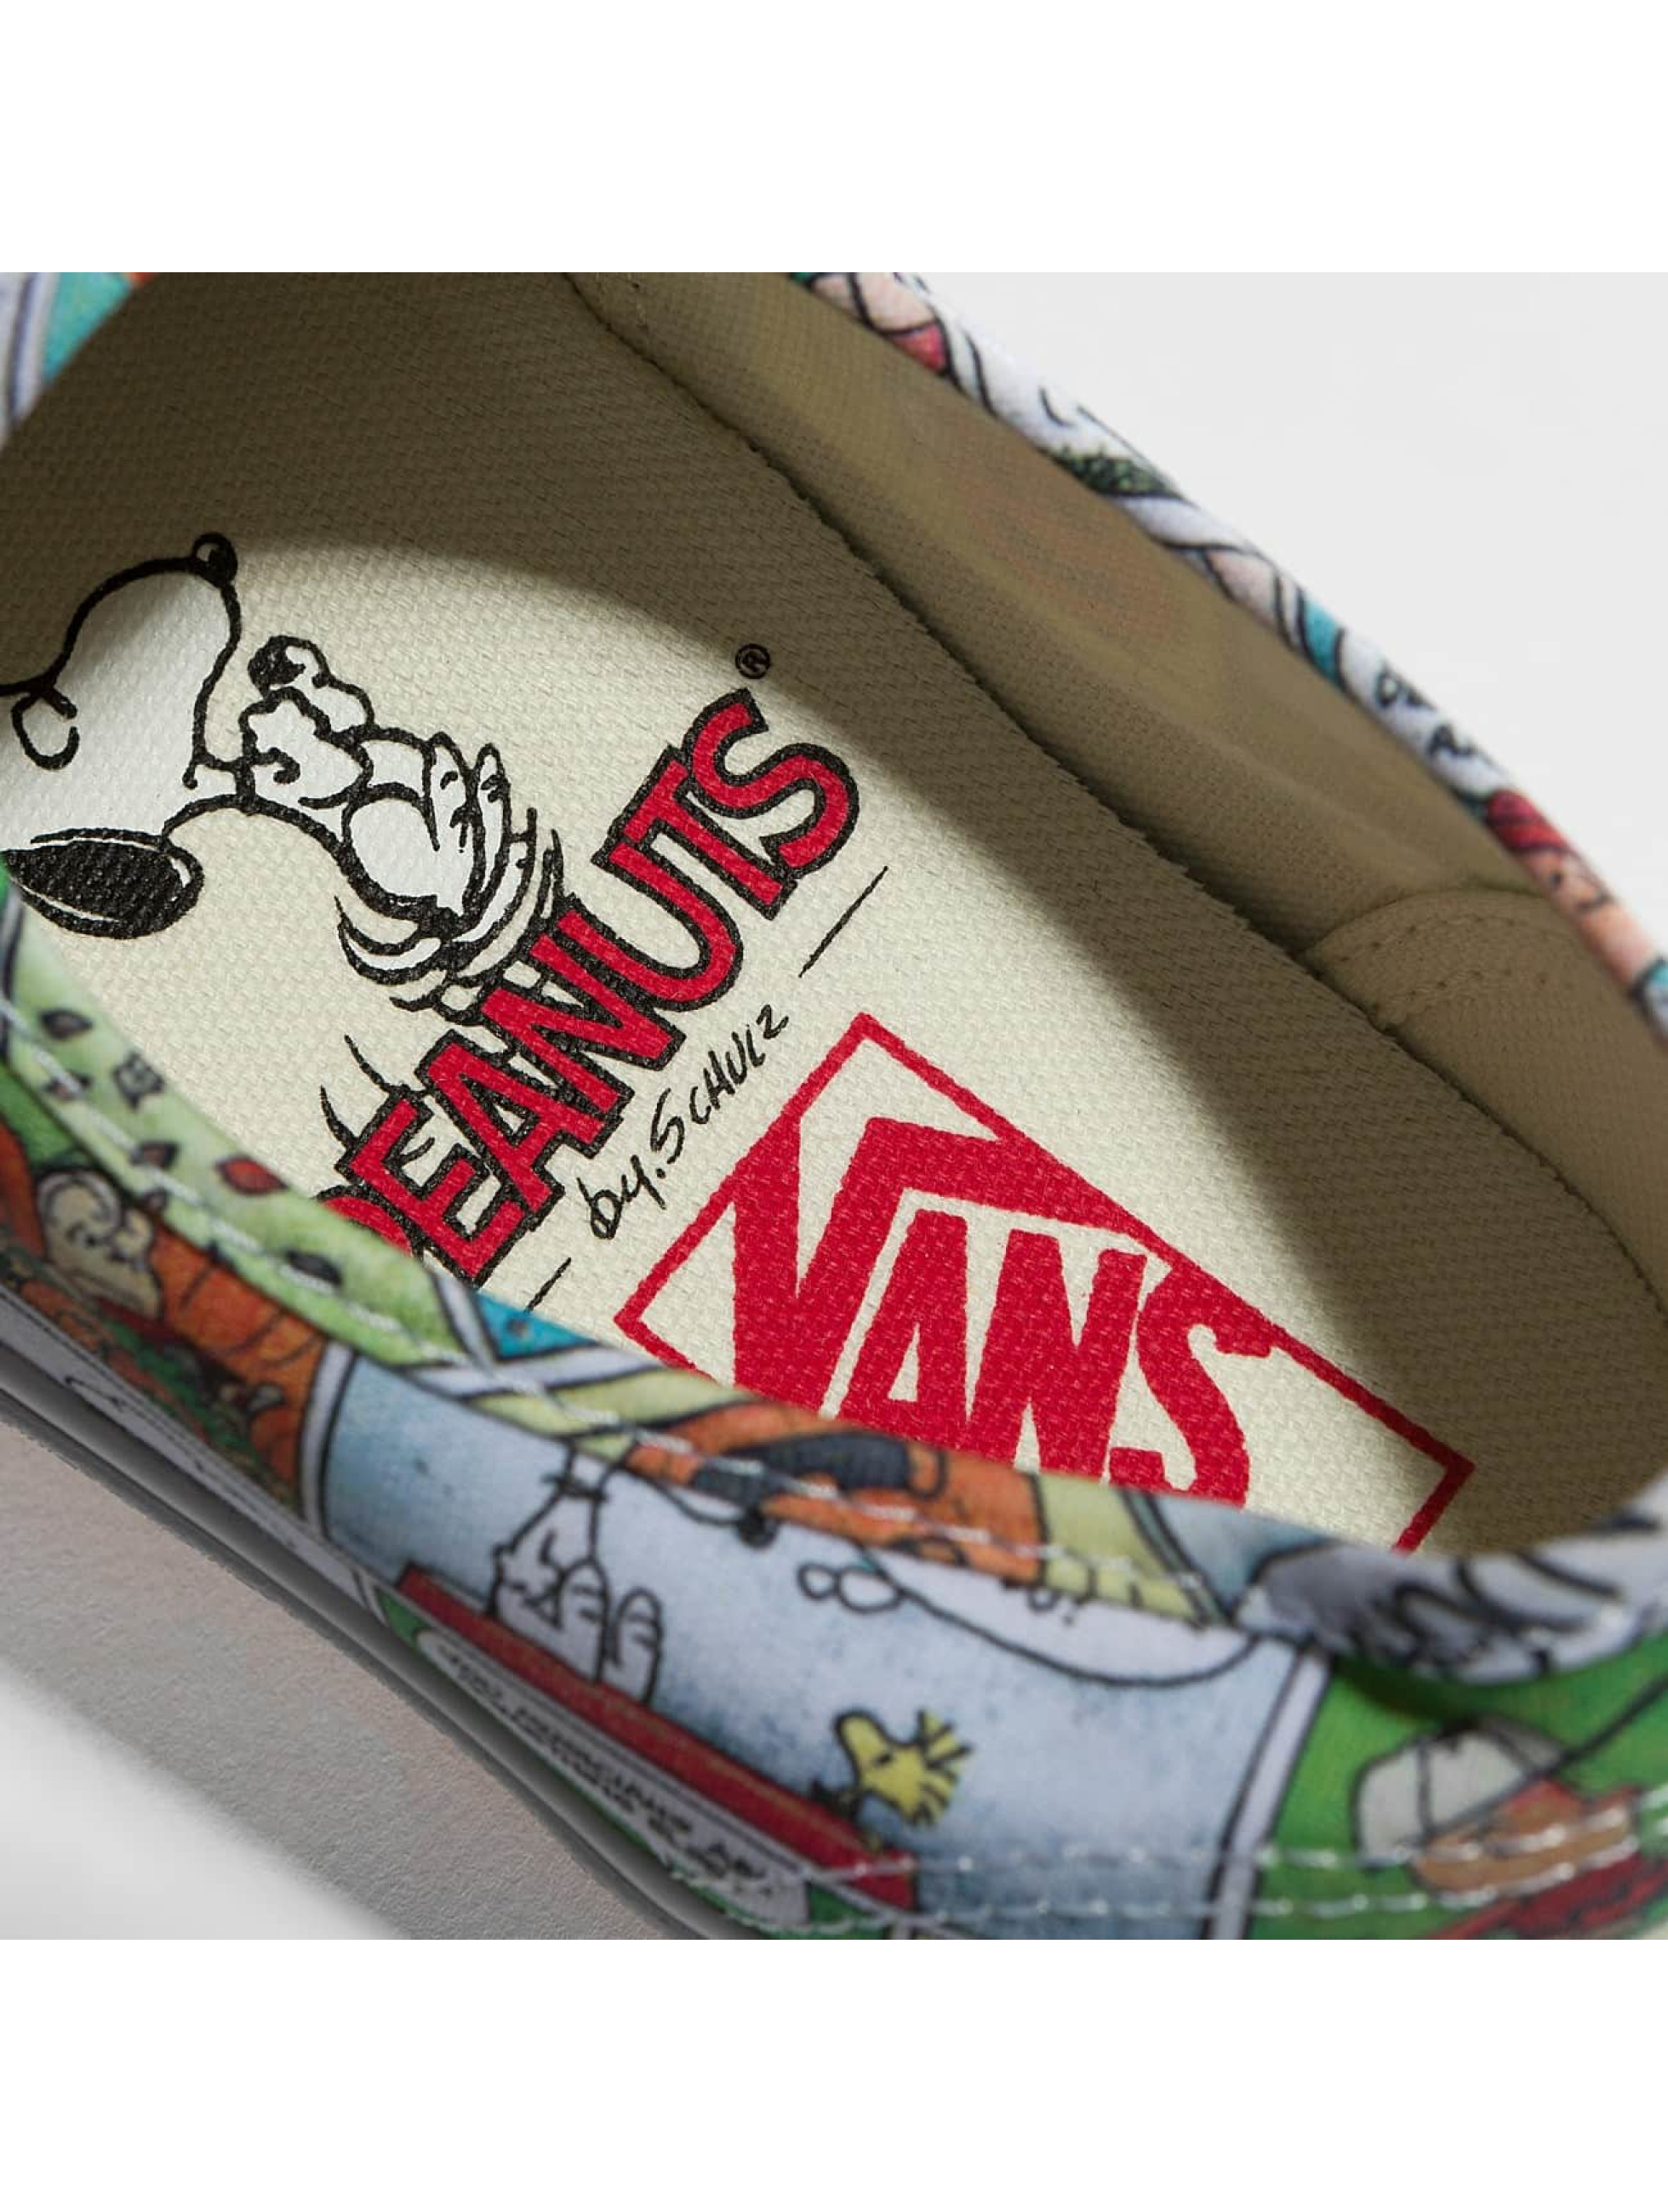 Vans Sneakers Peanuts Authentic colored